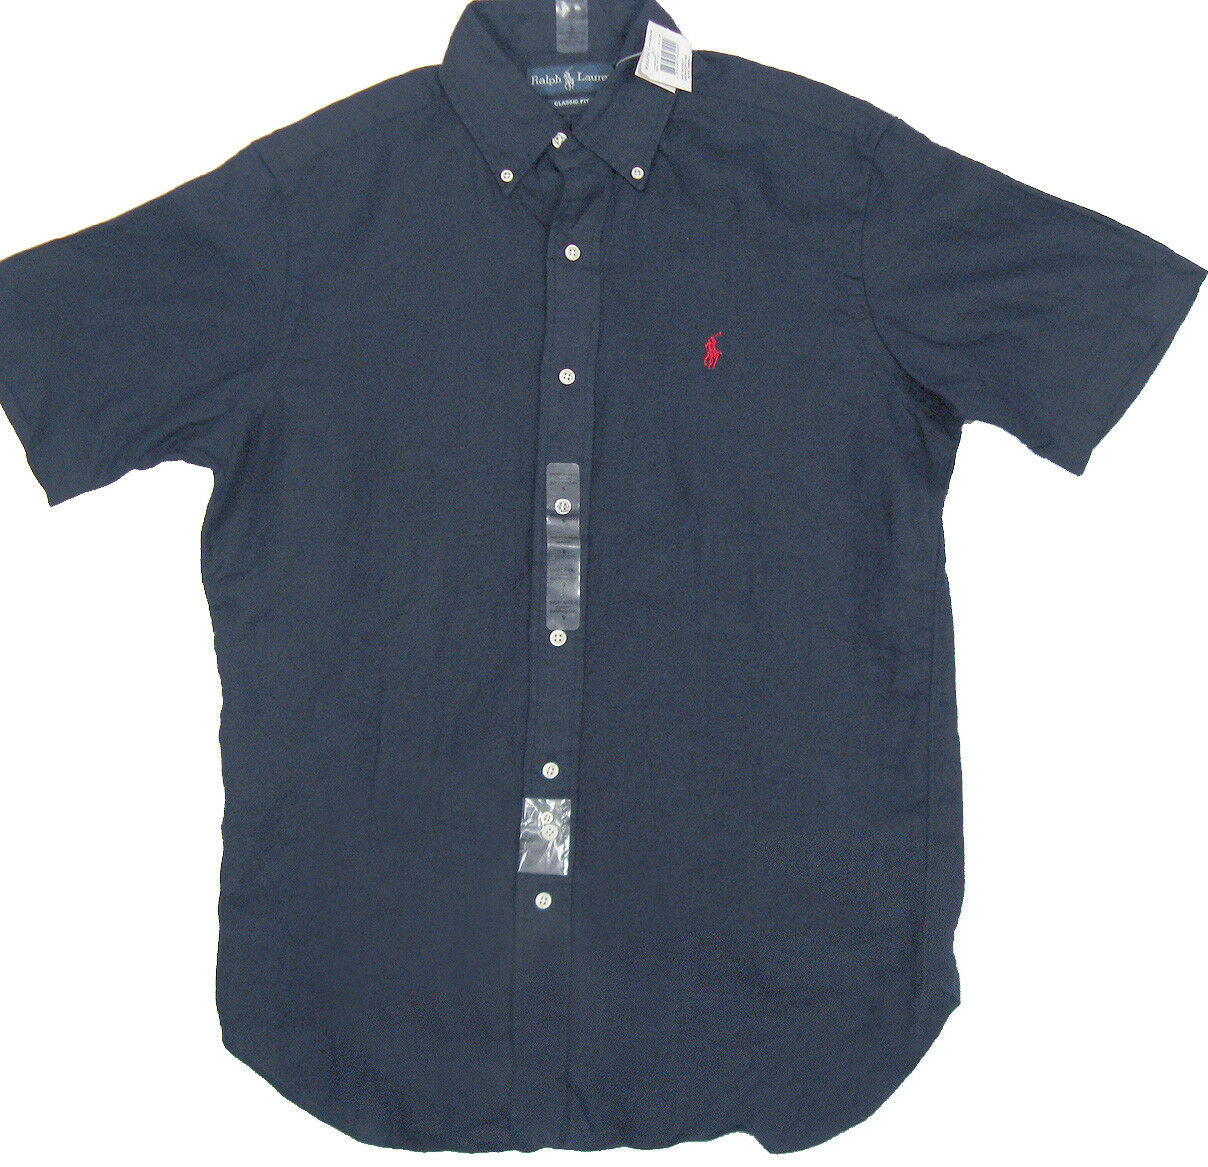 NEW Polo Ralph Lauren Linen Oxford Shirt  Small  Classic Fit  3 colors and Plaid